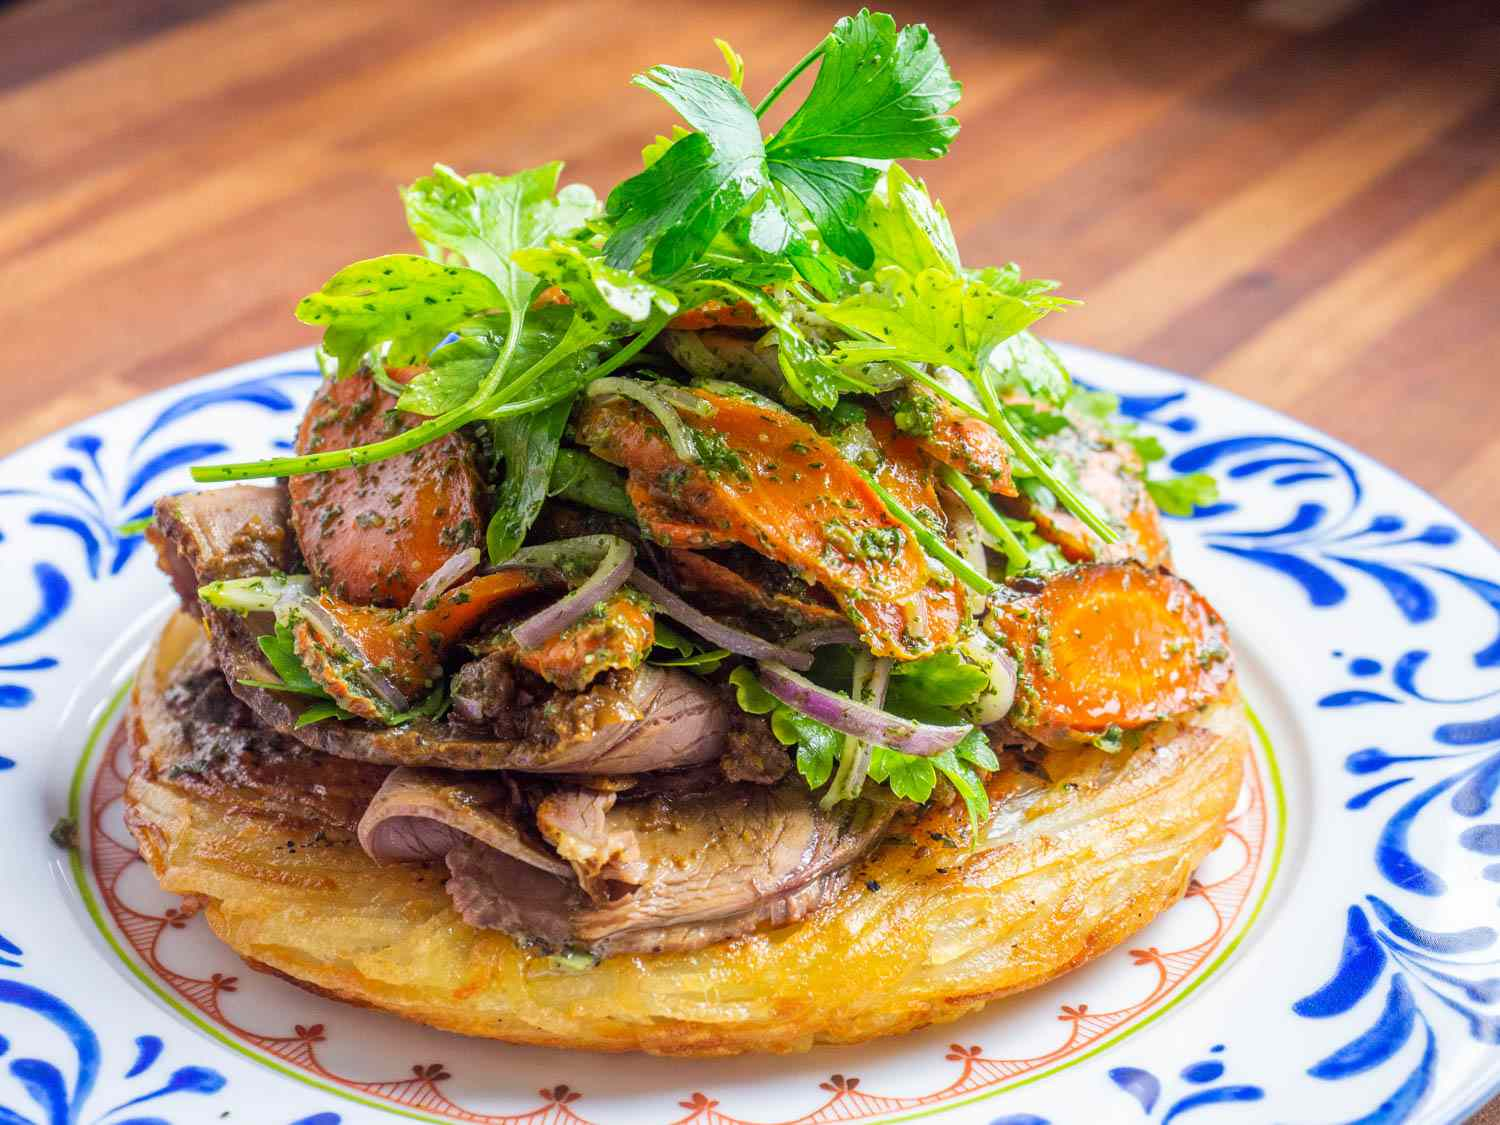 A potato cake topped with thinly sliced roasted lamb and a roasted carrot salad with fennel frond pesto